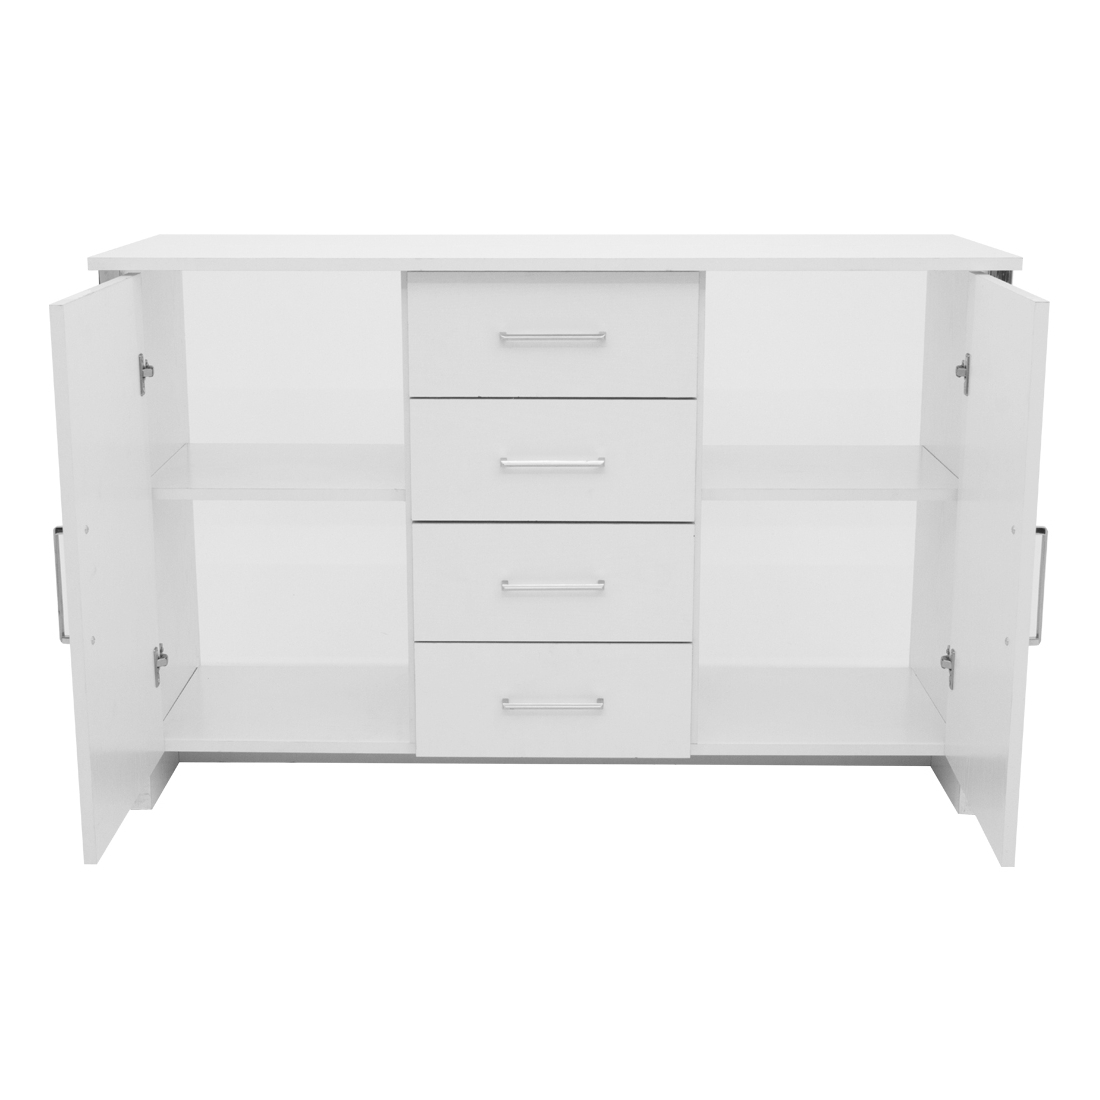 Gosport 2 Door / 4 Drawer Sideboard – White Ash — Online Pertaining To Current Gosport Sideboards (Gallery 13 of 20)